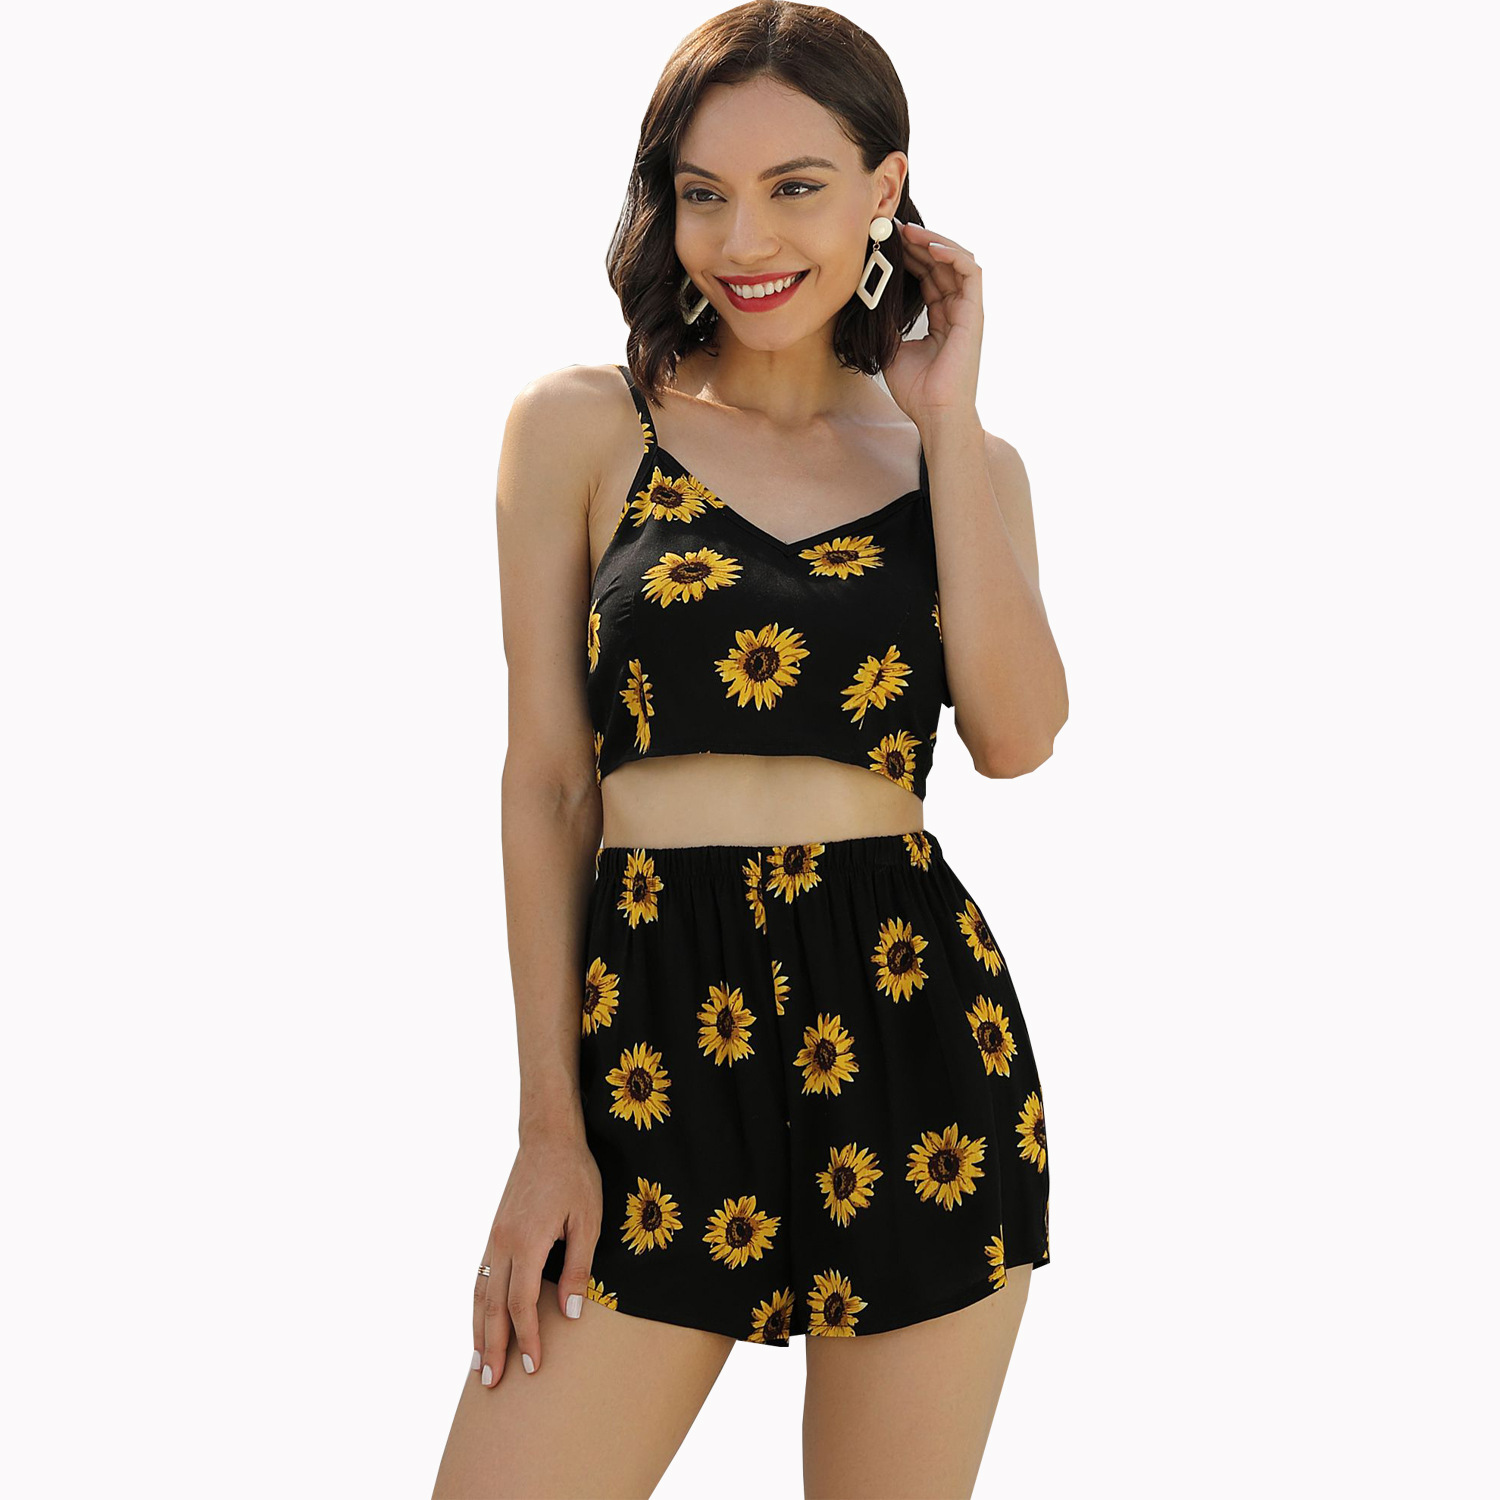 W-82028 AliExpress Amazon Europe And America Cross Border WOMEN'S Dress Holiday Printed Halter Tops Casual Short Suit